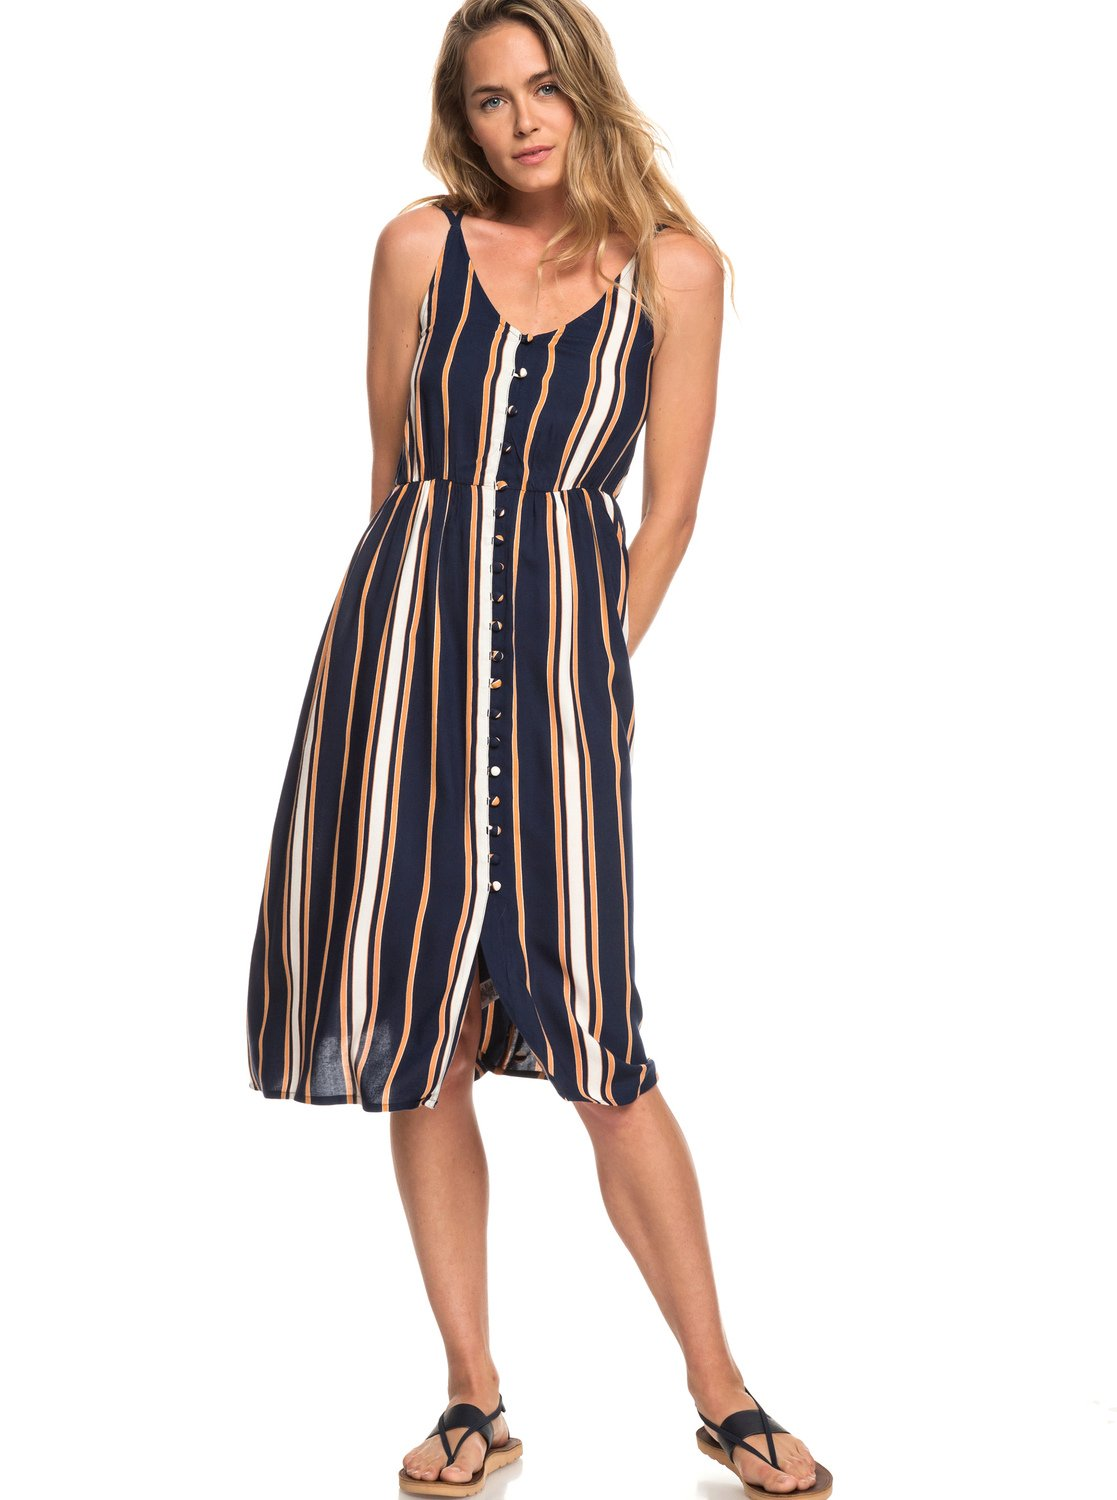 ff83ff37af5 Image is loading Roxy-Sunset-Beauty-Strappy-Midi-Dress-for-Women-